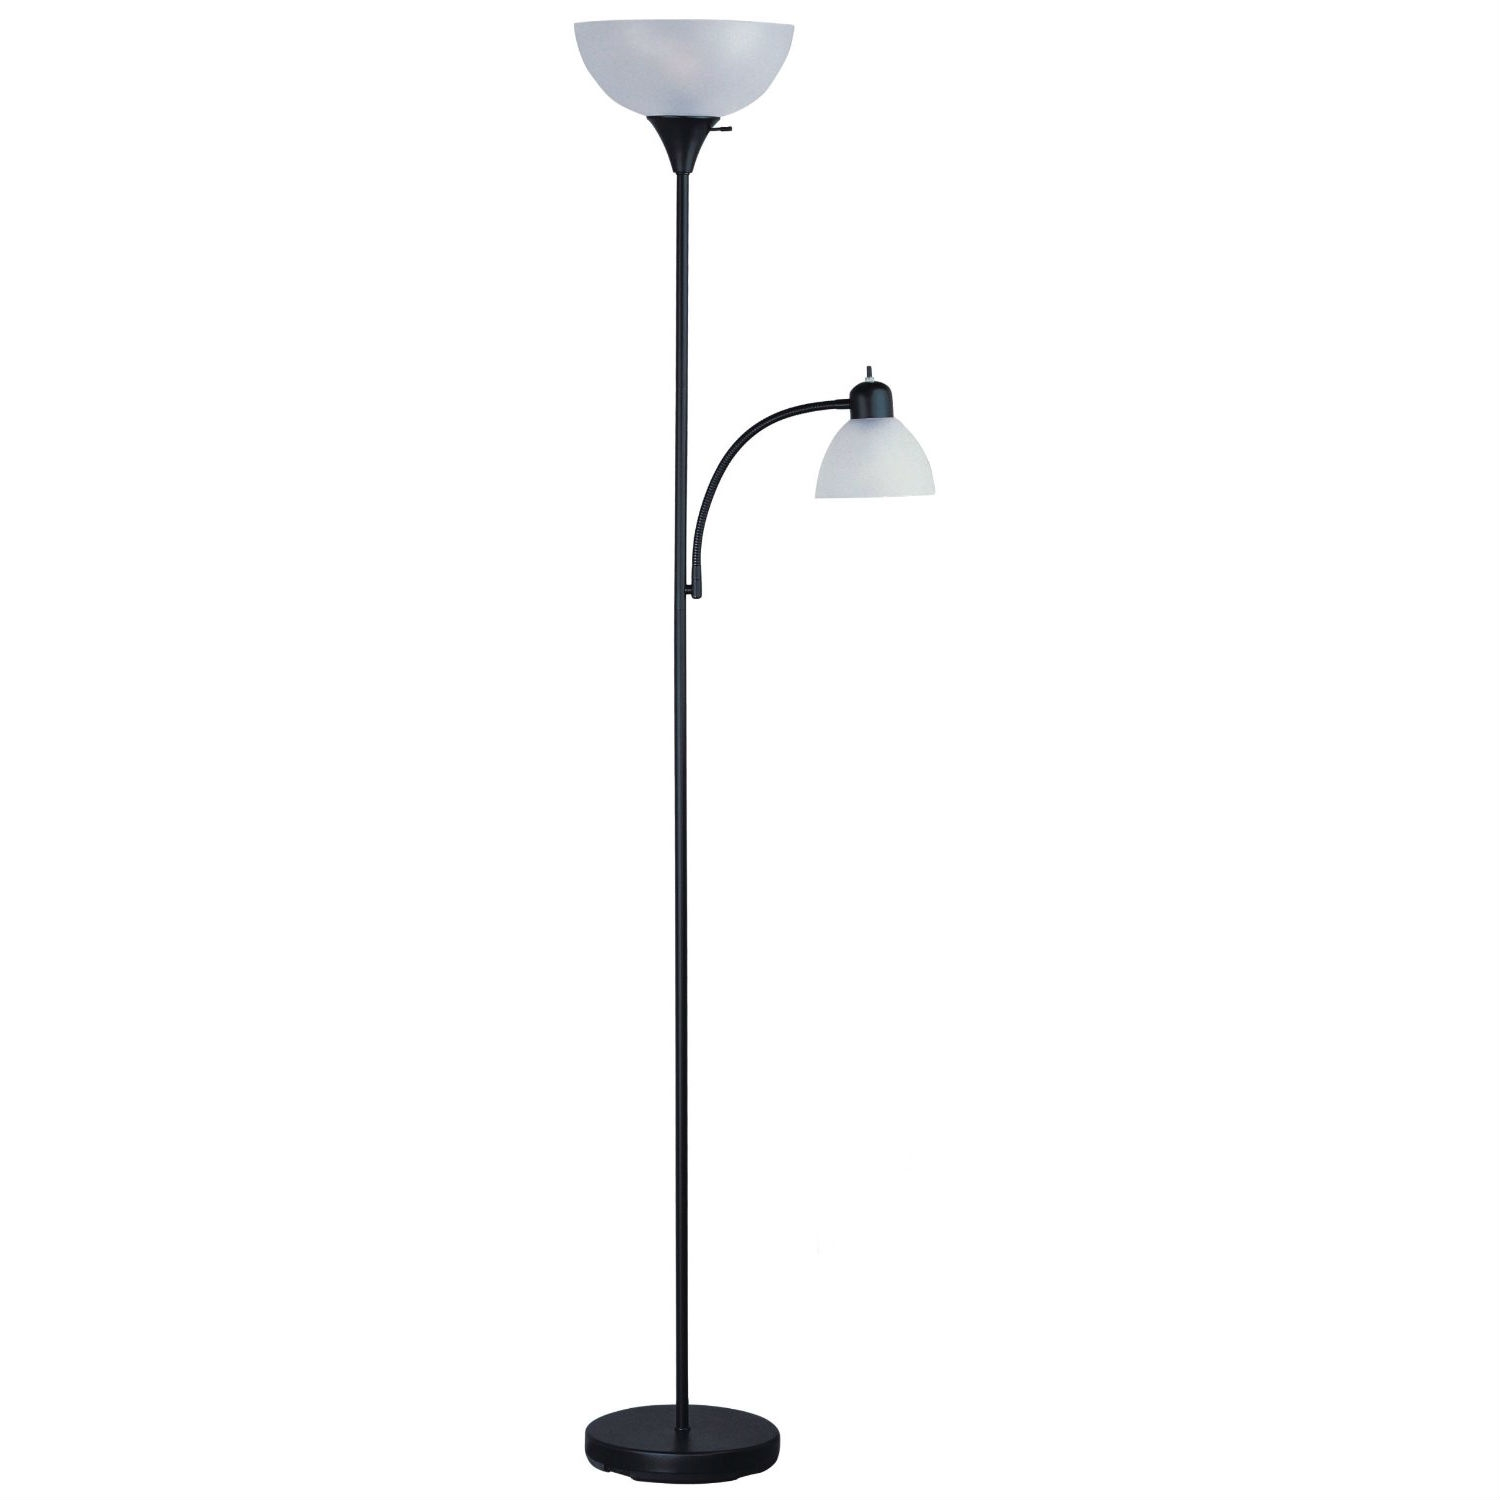 This 72-inch Tall Black Floor Lamp with Adjustable Reading Side Lamp with adjustable side arm reading lamp is perfect as a general lighting-Piece. It features a contemporary design, a gorgeous black finish with frosted shades, and a 3-way switch on torchiere. It also includes a 60-Watt additional side arm reading light. It is UL listed. Bulbs not included.